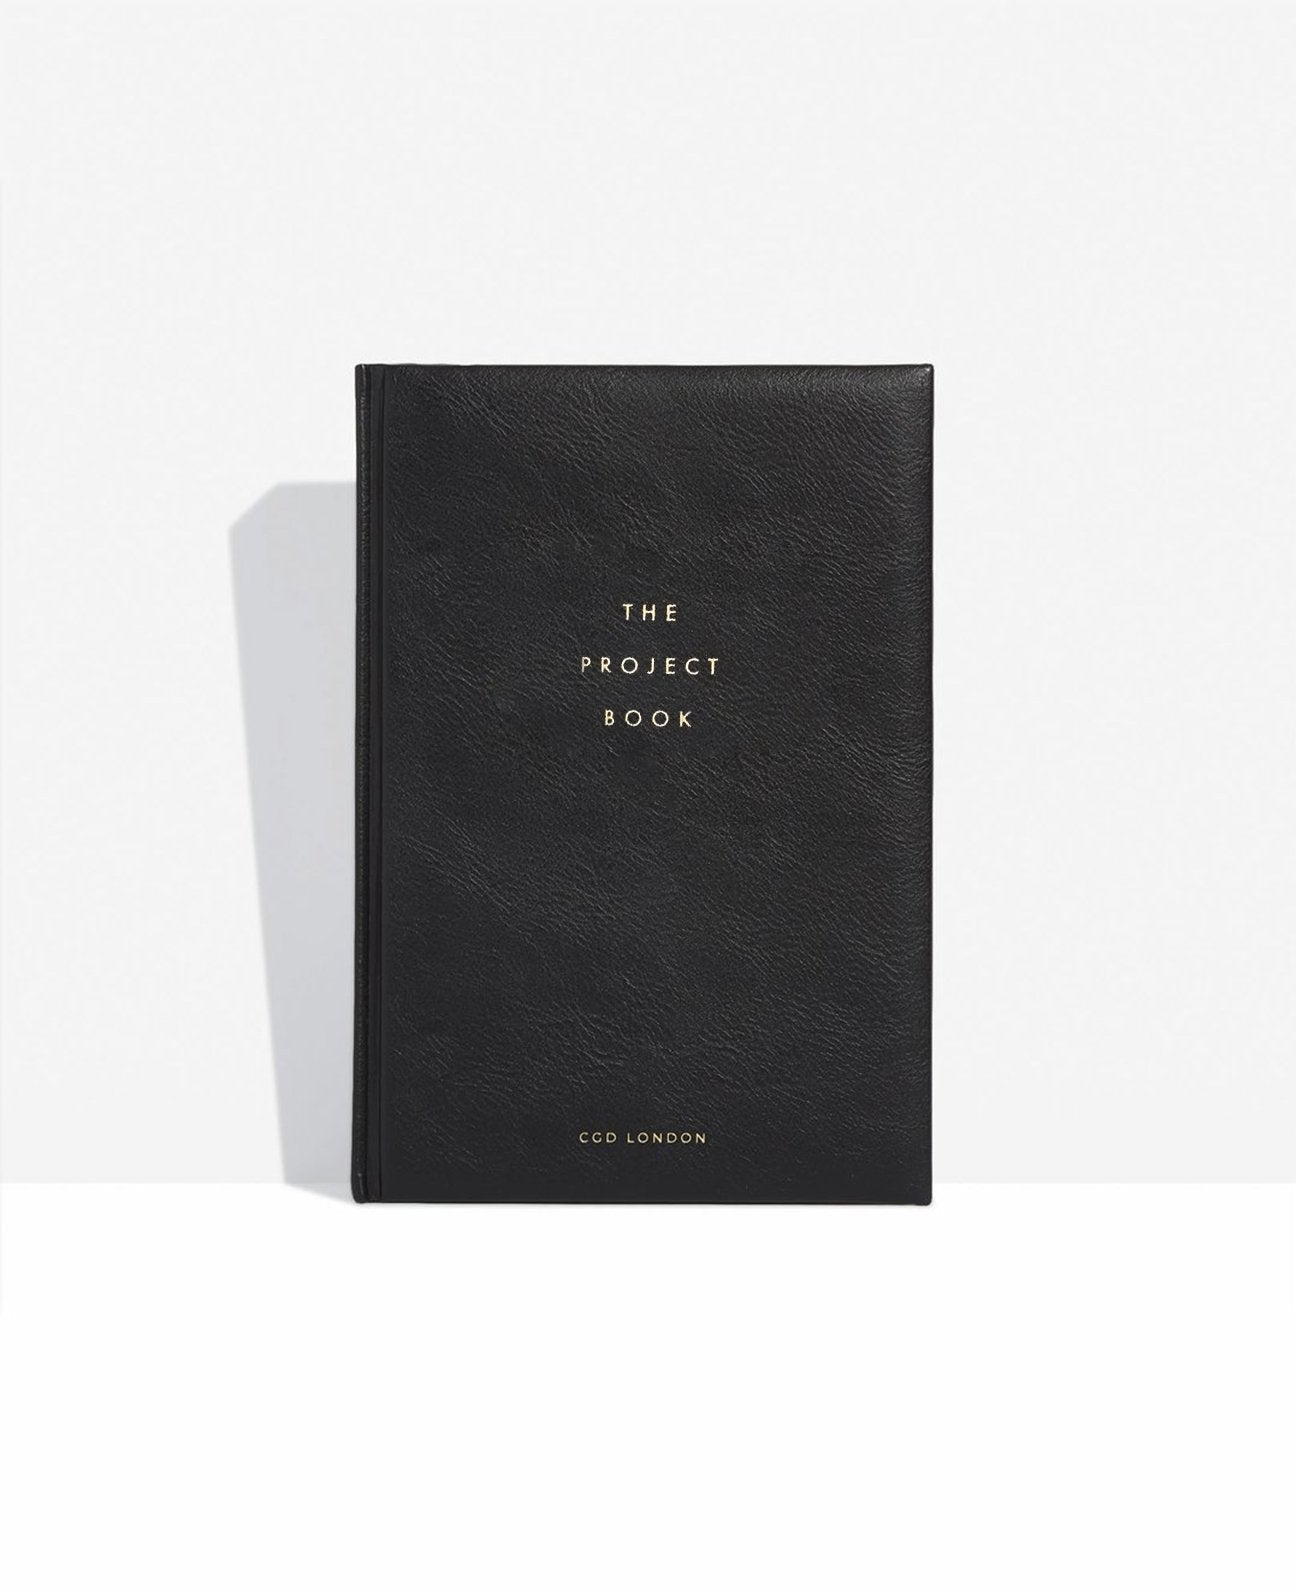 The Project Book - CGD LONDON